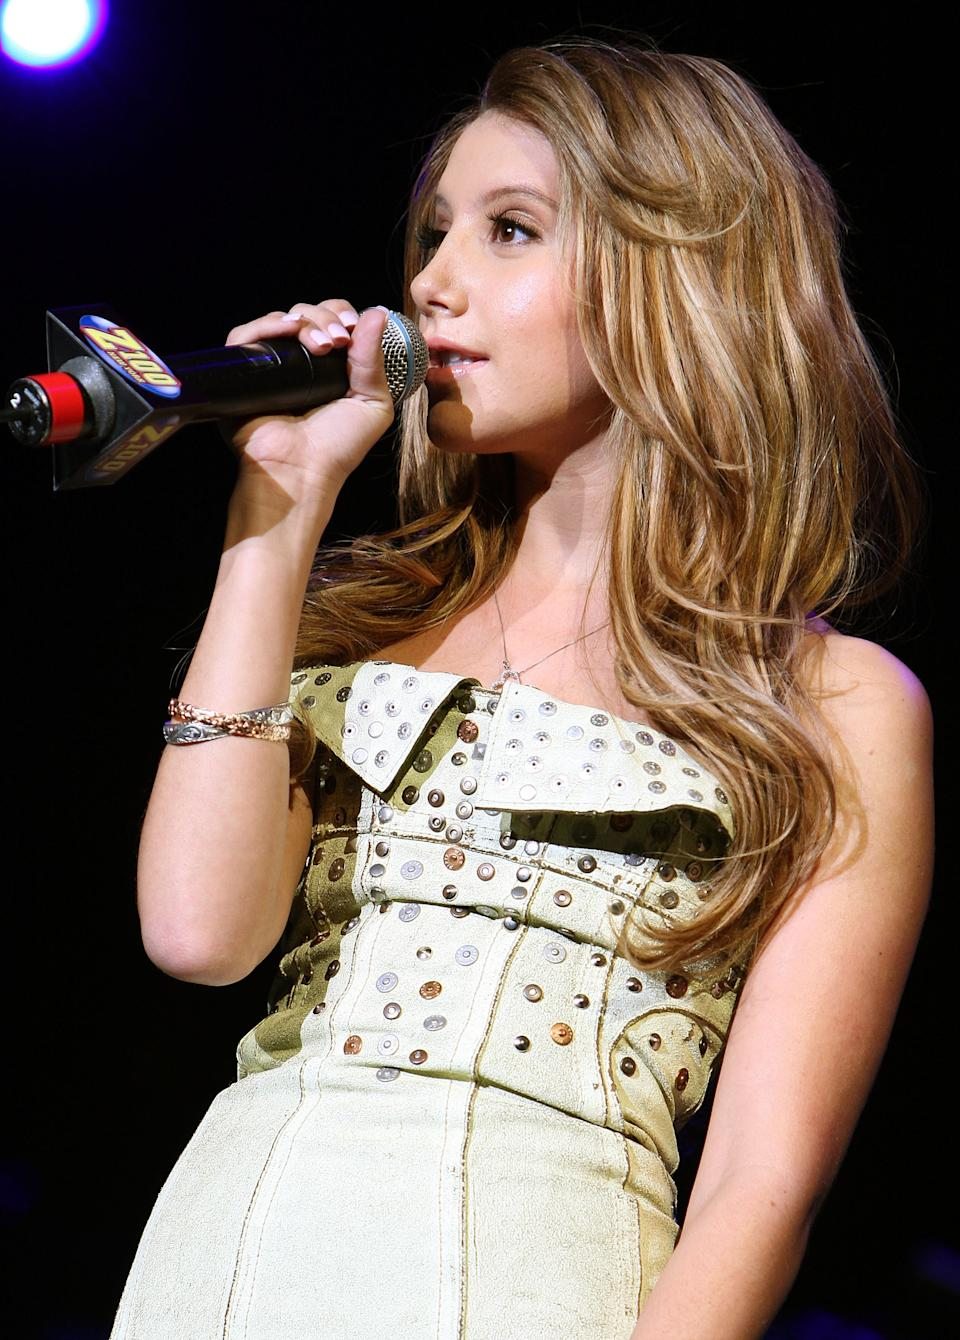 Ashley Tisdale depicted at Z100's Jingle Ball 2007 on December 14, 2007. (Photo: Theo Wargo/WireImage)